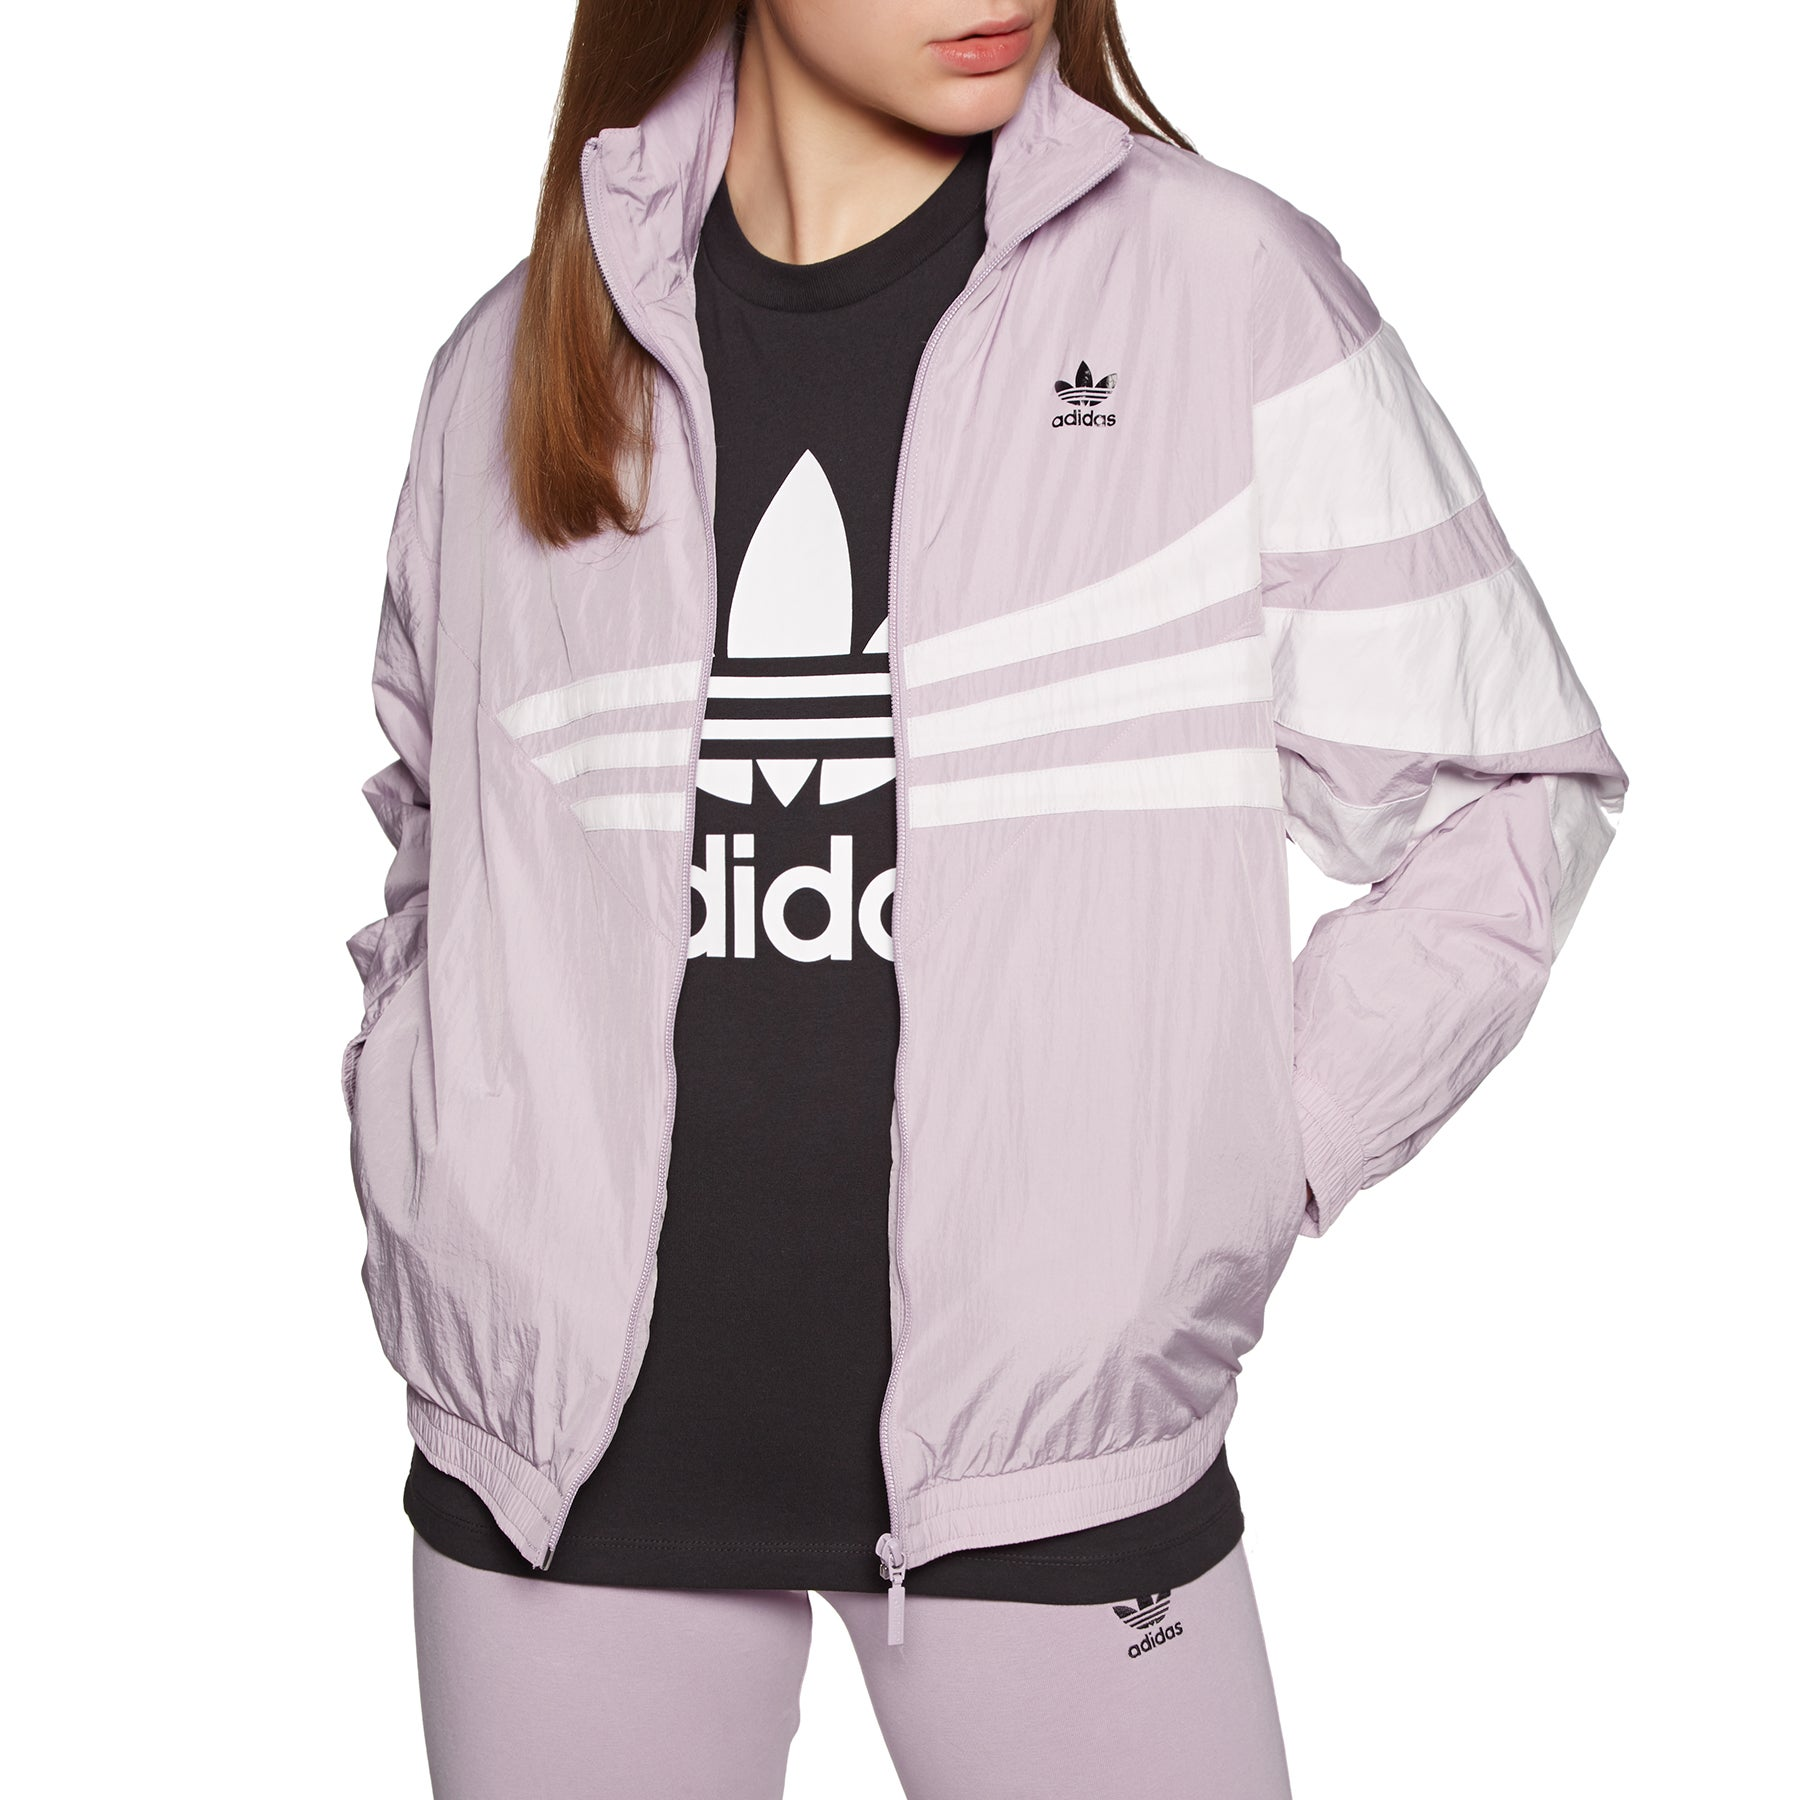 Adidas Originals Women Tracksuit Top Jacket Tracksuits & Sets